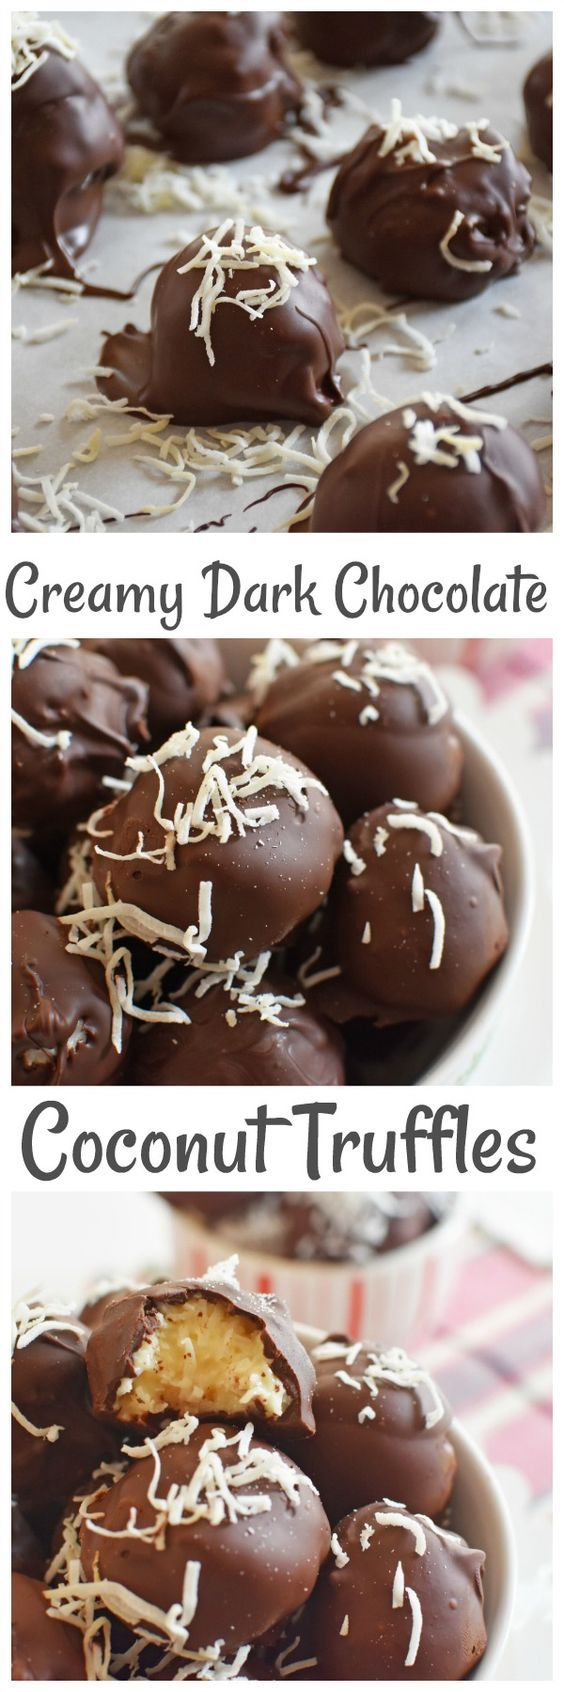 This Creamy Dark Chocolate Coconut Truffles recipe is a MUST for your holiday parties this season! Save on all your holiday baking supplies with O Organics foods available exclusively in my area at Shaw's Supermarkets. They're great tasting and a great value – win-win! AD https://www.savvysavingcouple.net/recipe/creamy-dark-chocolate-coconut-truffles/